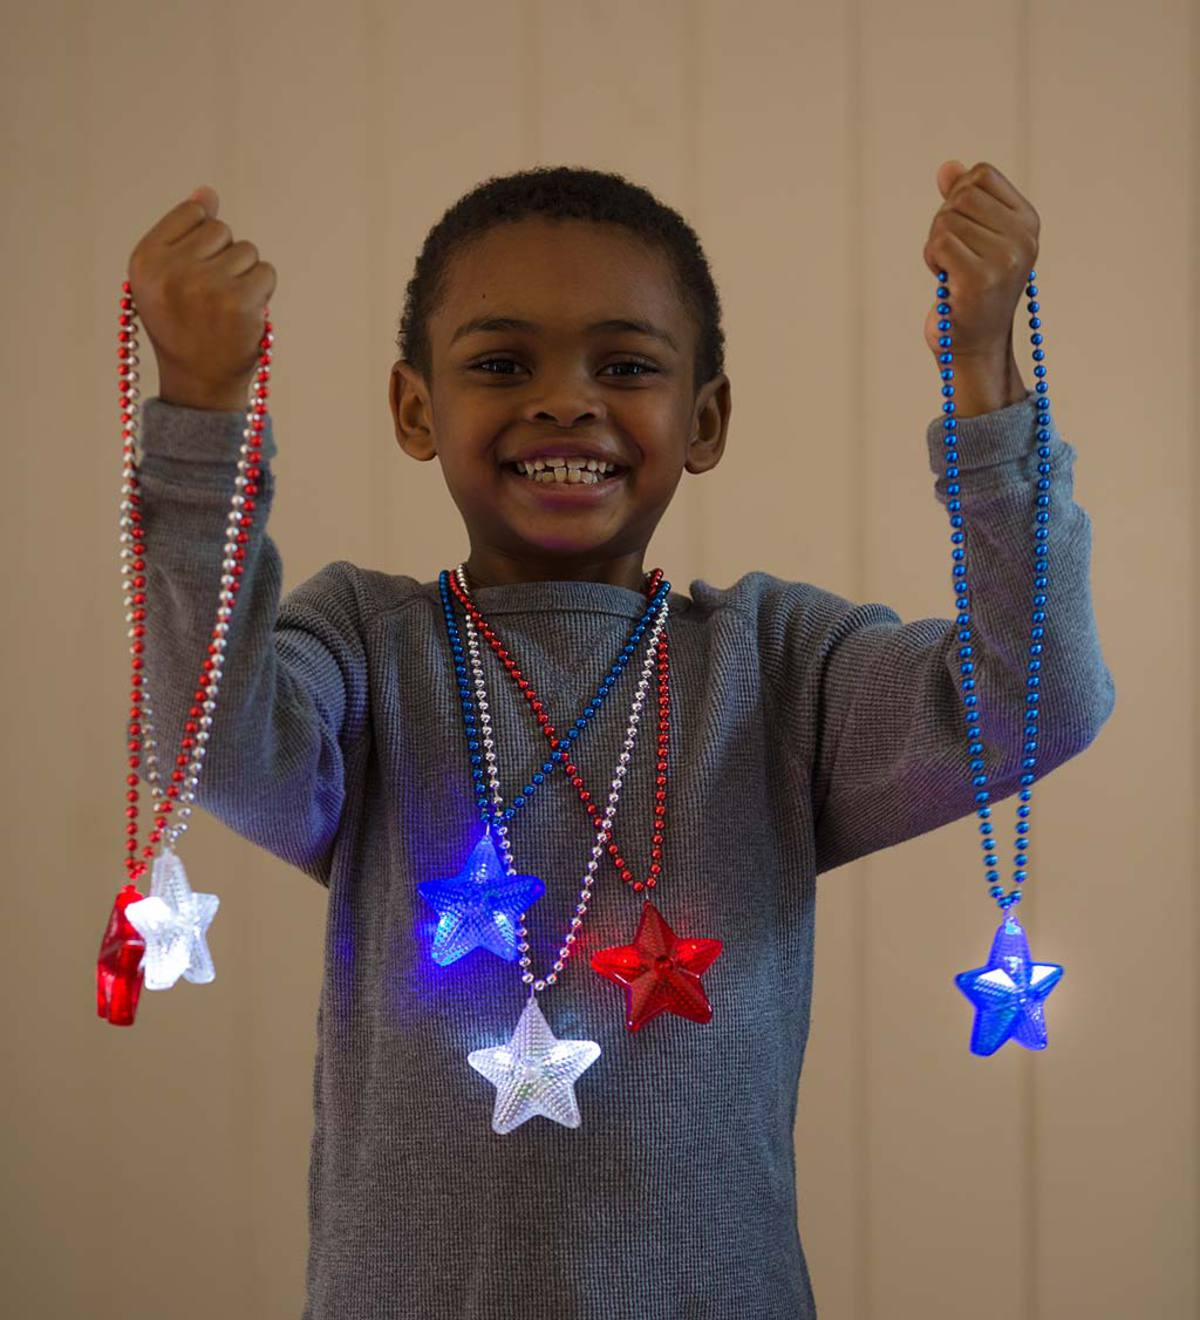 Light-Up Star Necklaces (set of 6)